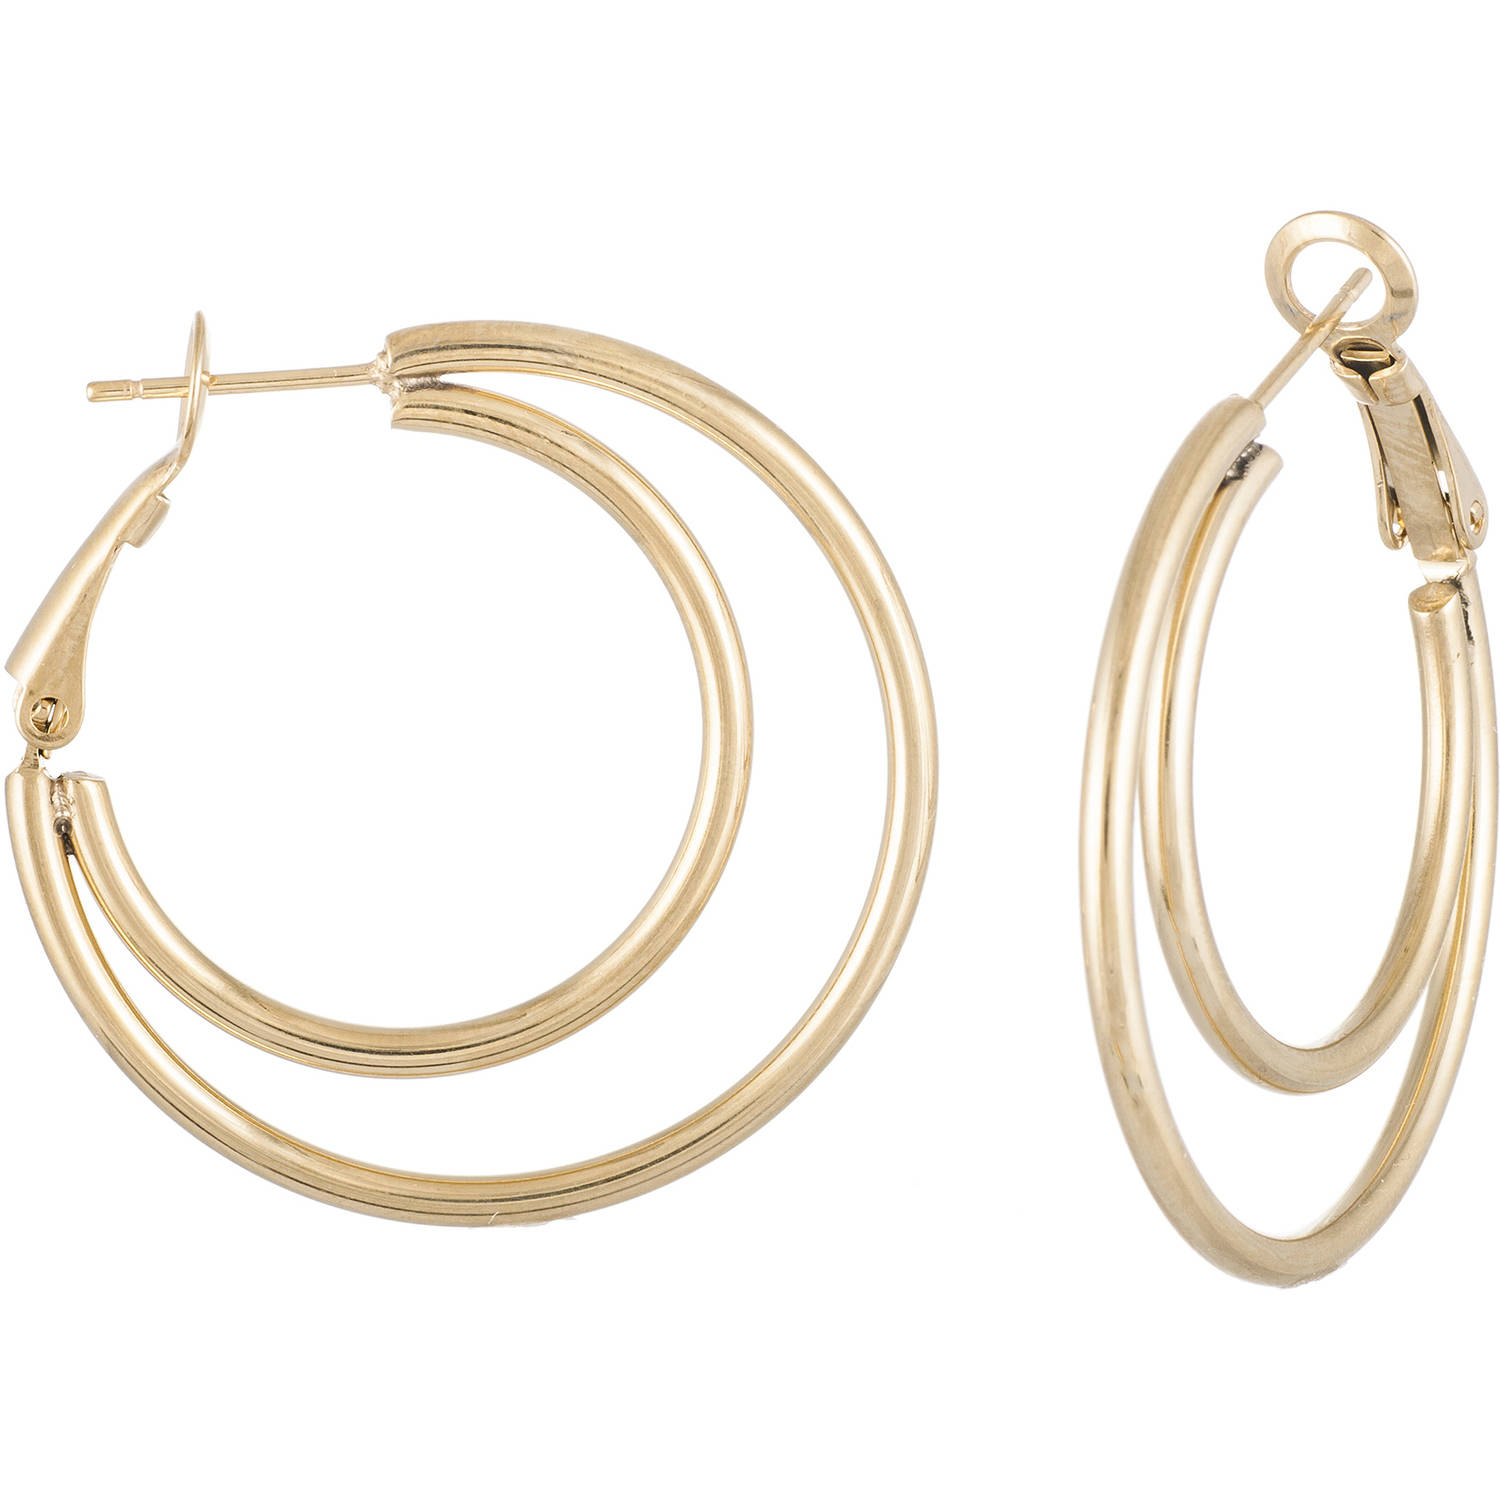 Angelique Silver Gold-Tone Stainless Steel 34mm Double-Hoop Earrings